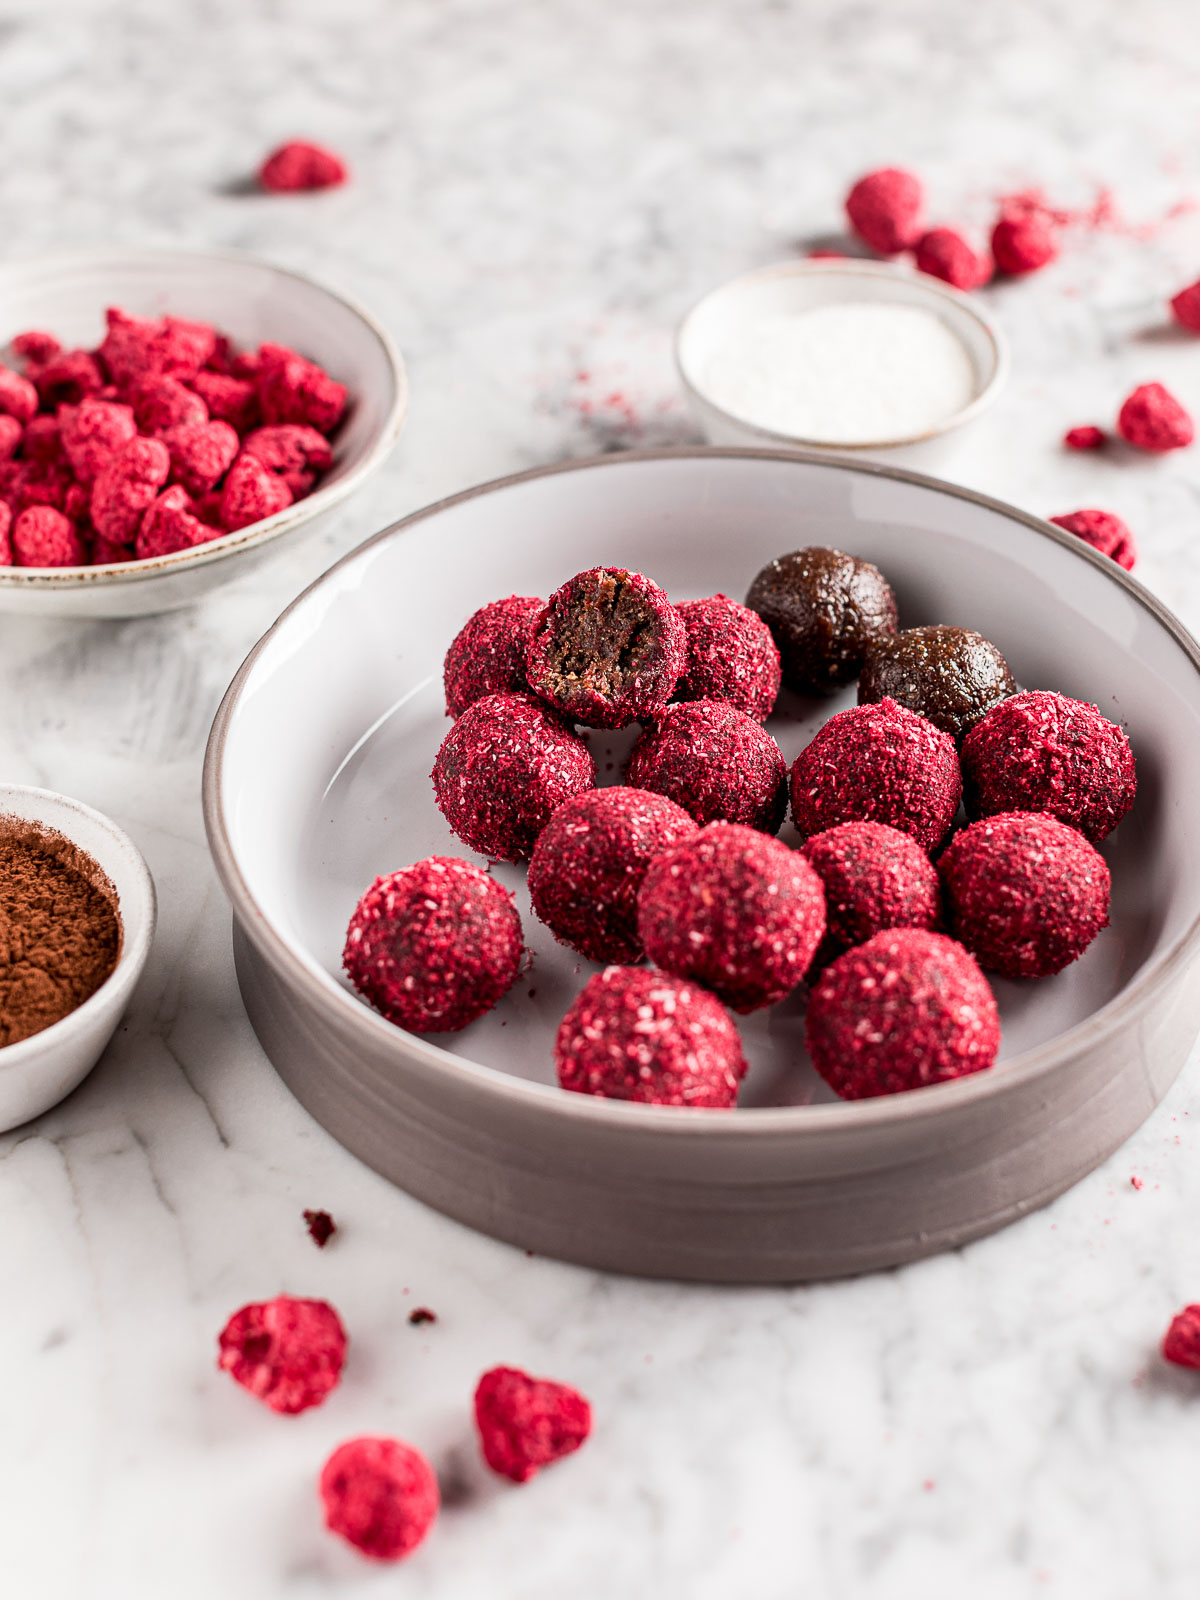 Ricetta Vegan Energy Balls al Cacao Cocco e Lamponi post allenamento Yoga bliss balls post workout Healthy snack Peanut Butter and Raspberry cacao Energy Balls recipe